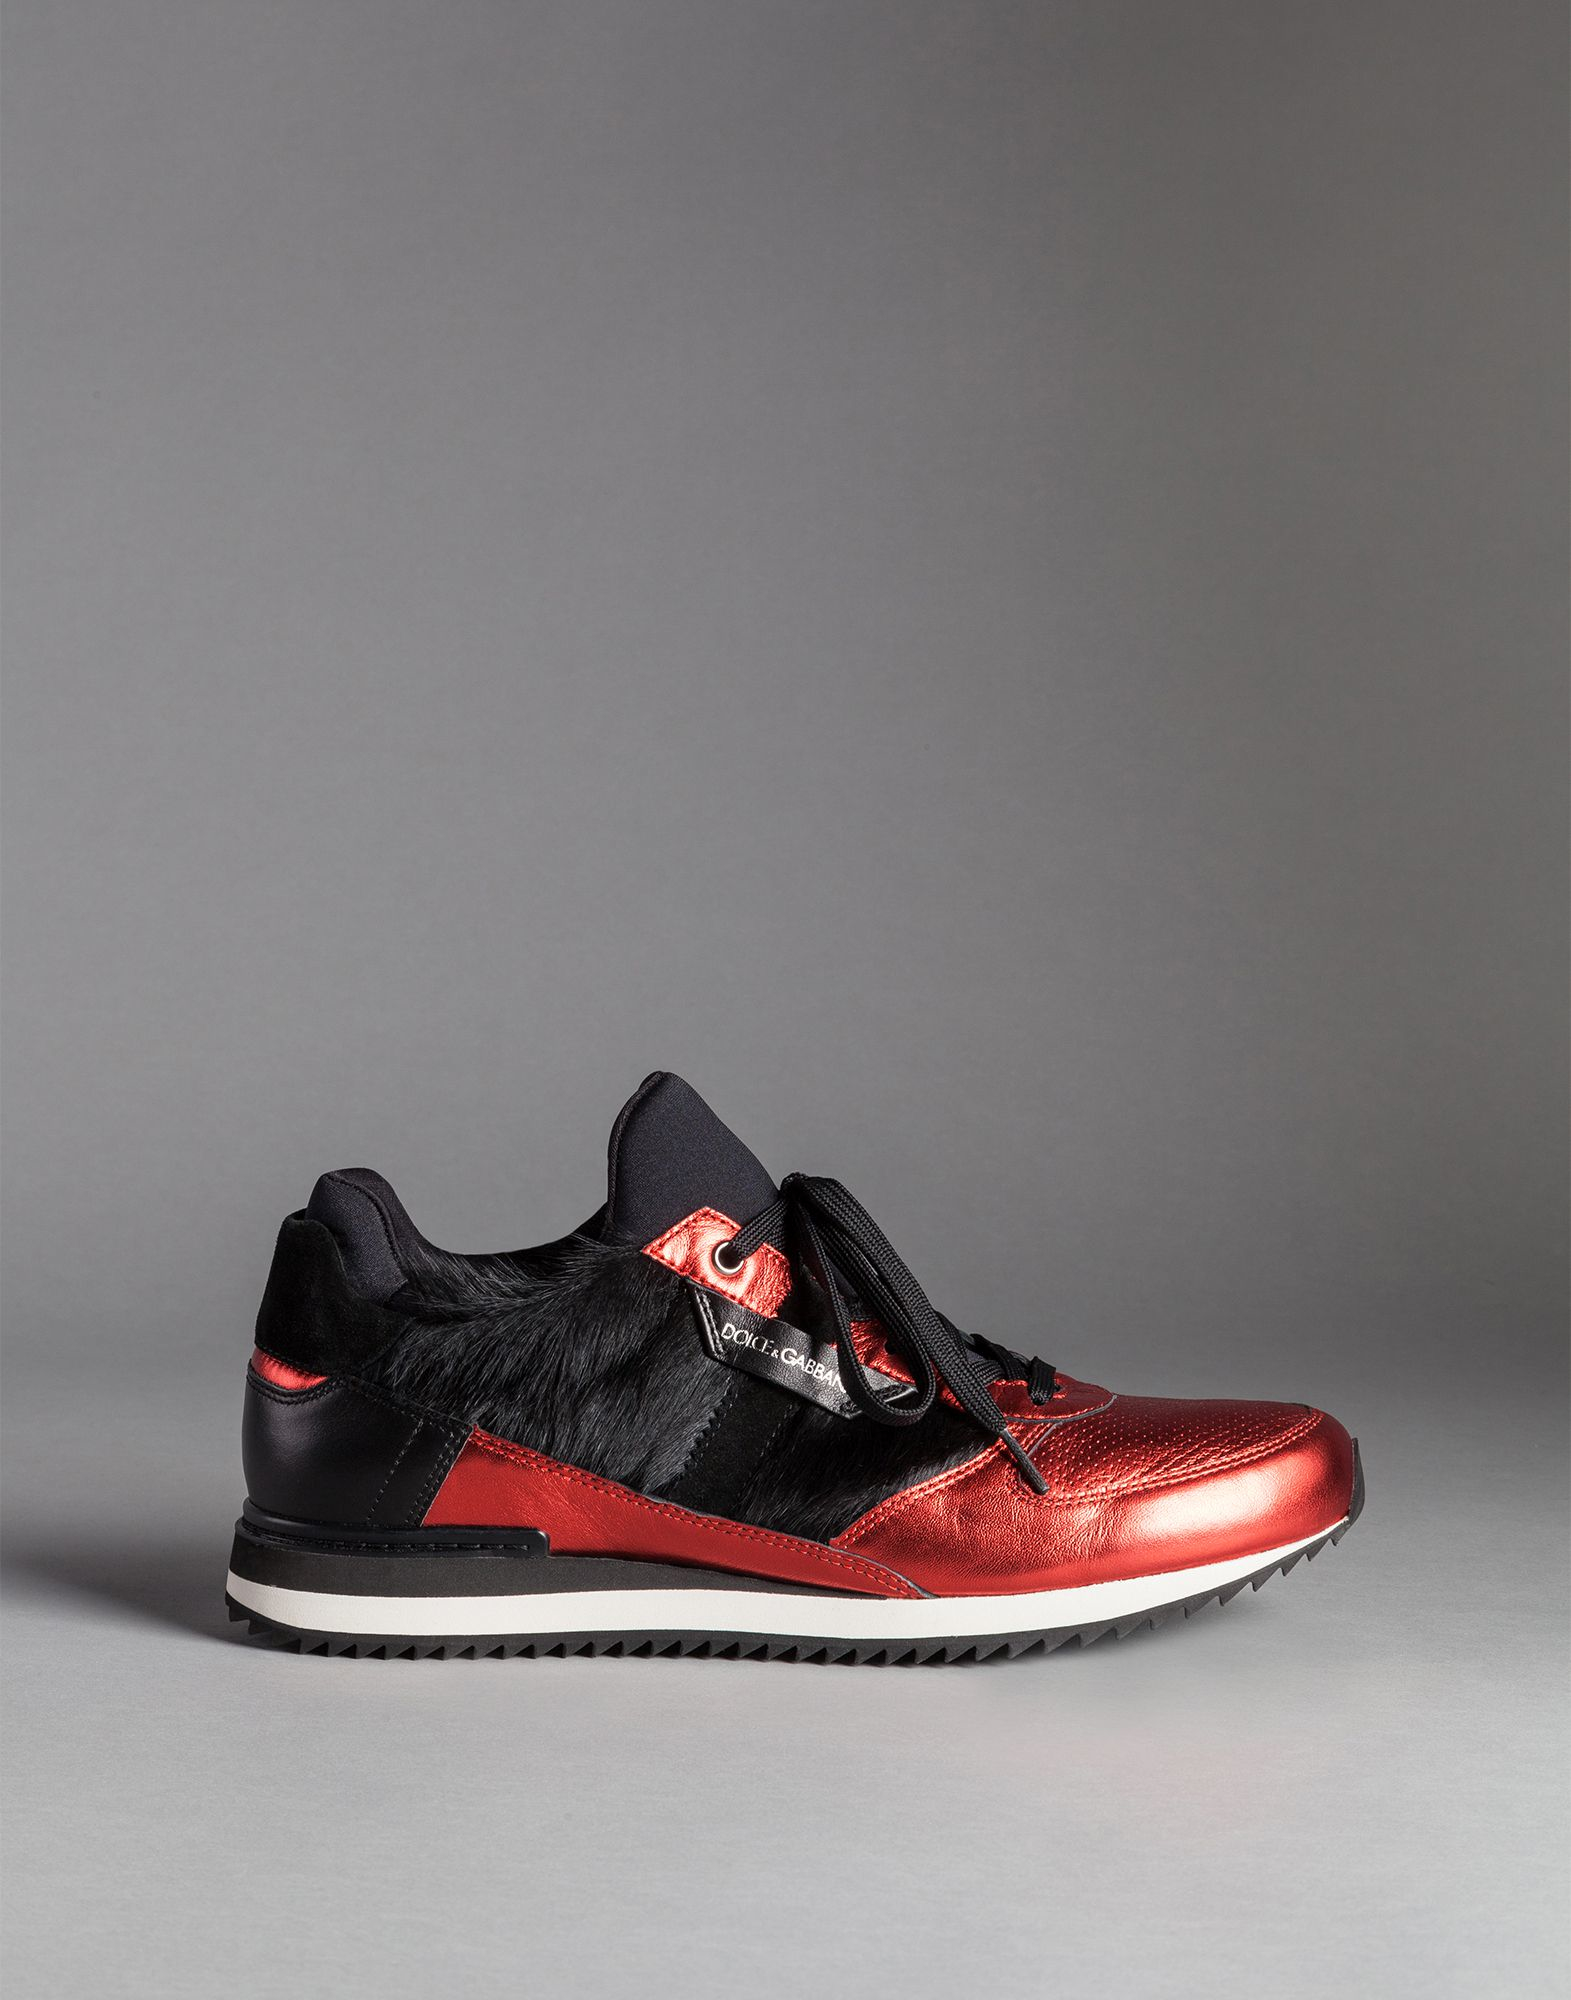 lyst dolce gabbana sneakers laminated pony detail in red for men. Black Bedroom Furniture Sets. Home Design Ideas